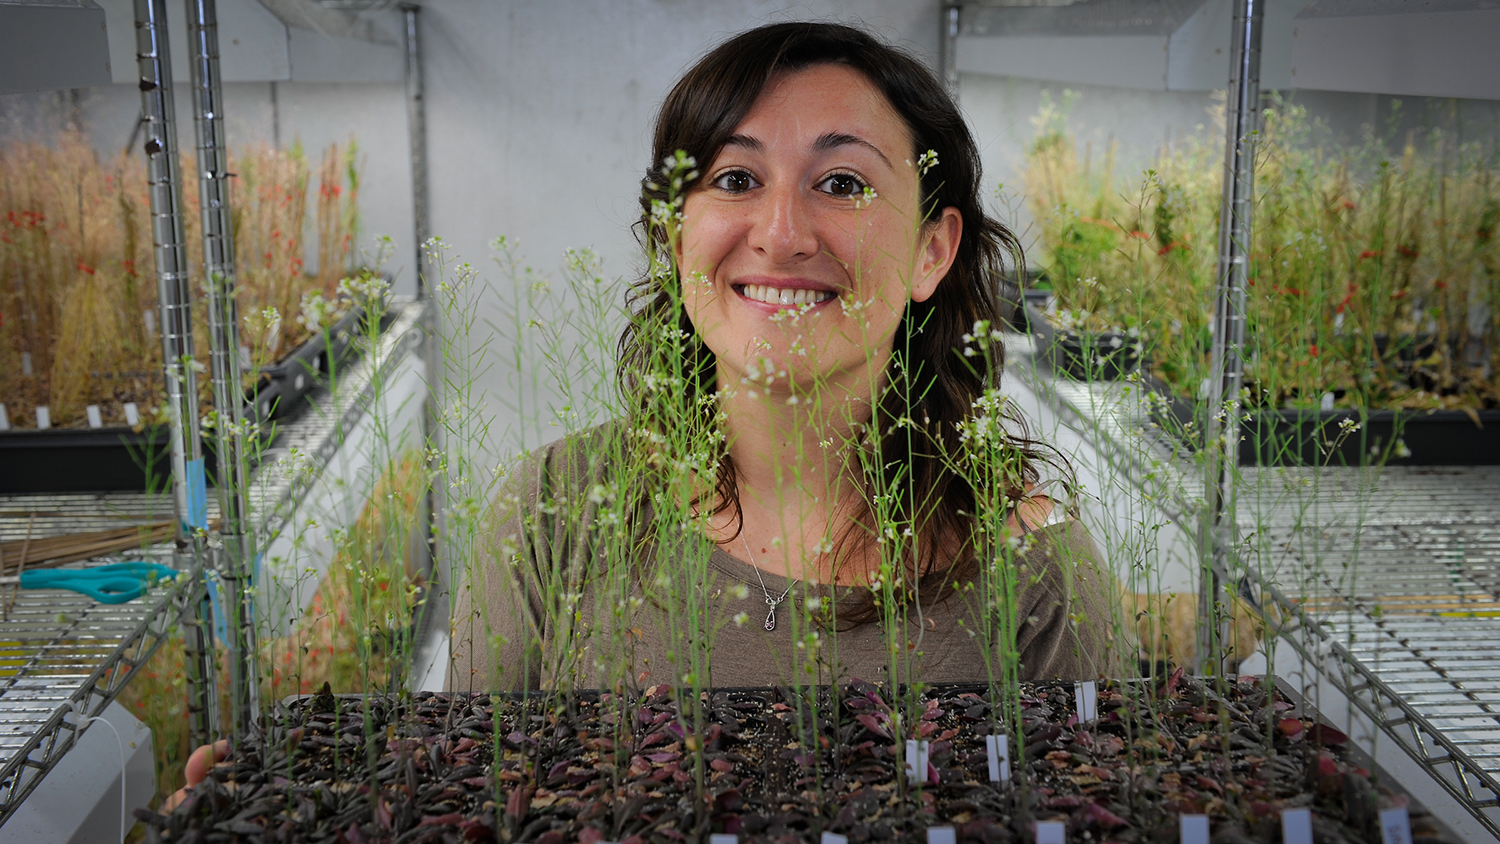 Scientist in a lab holding a tray of Arabidopsis